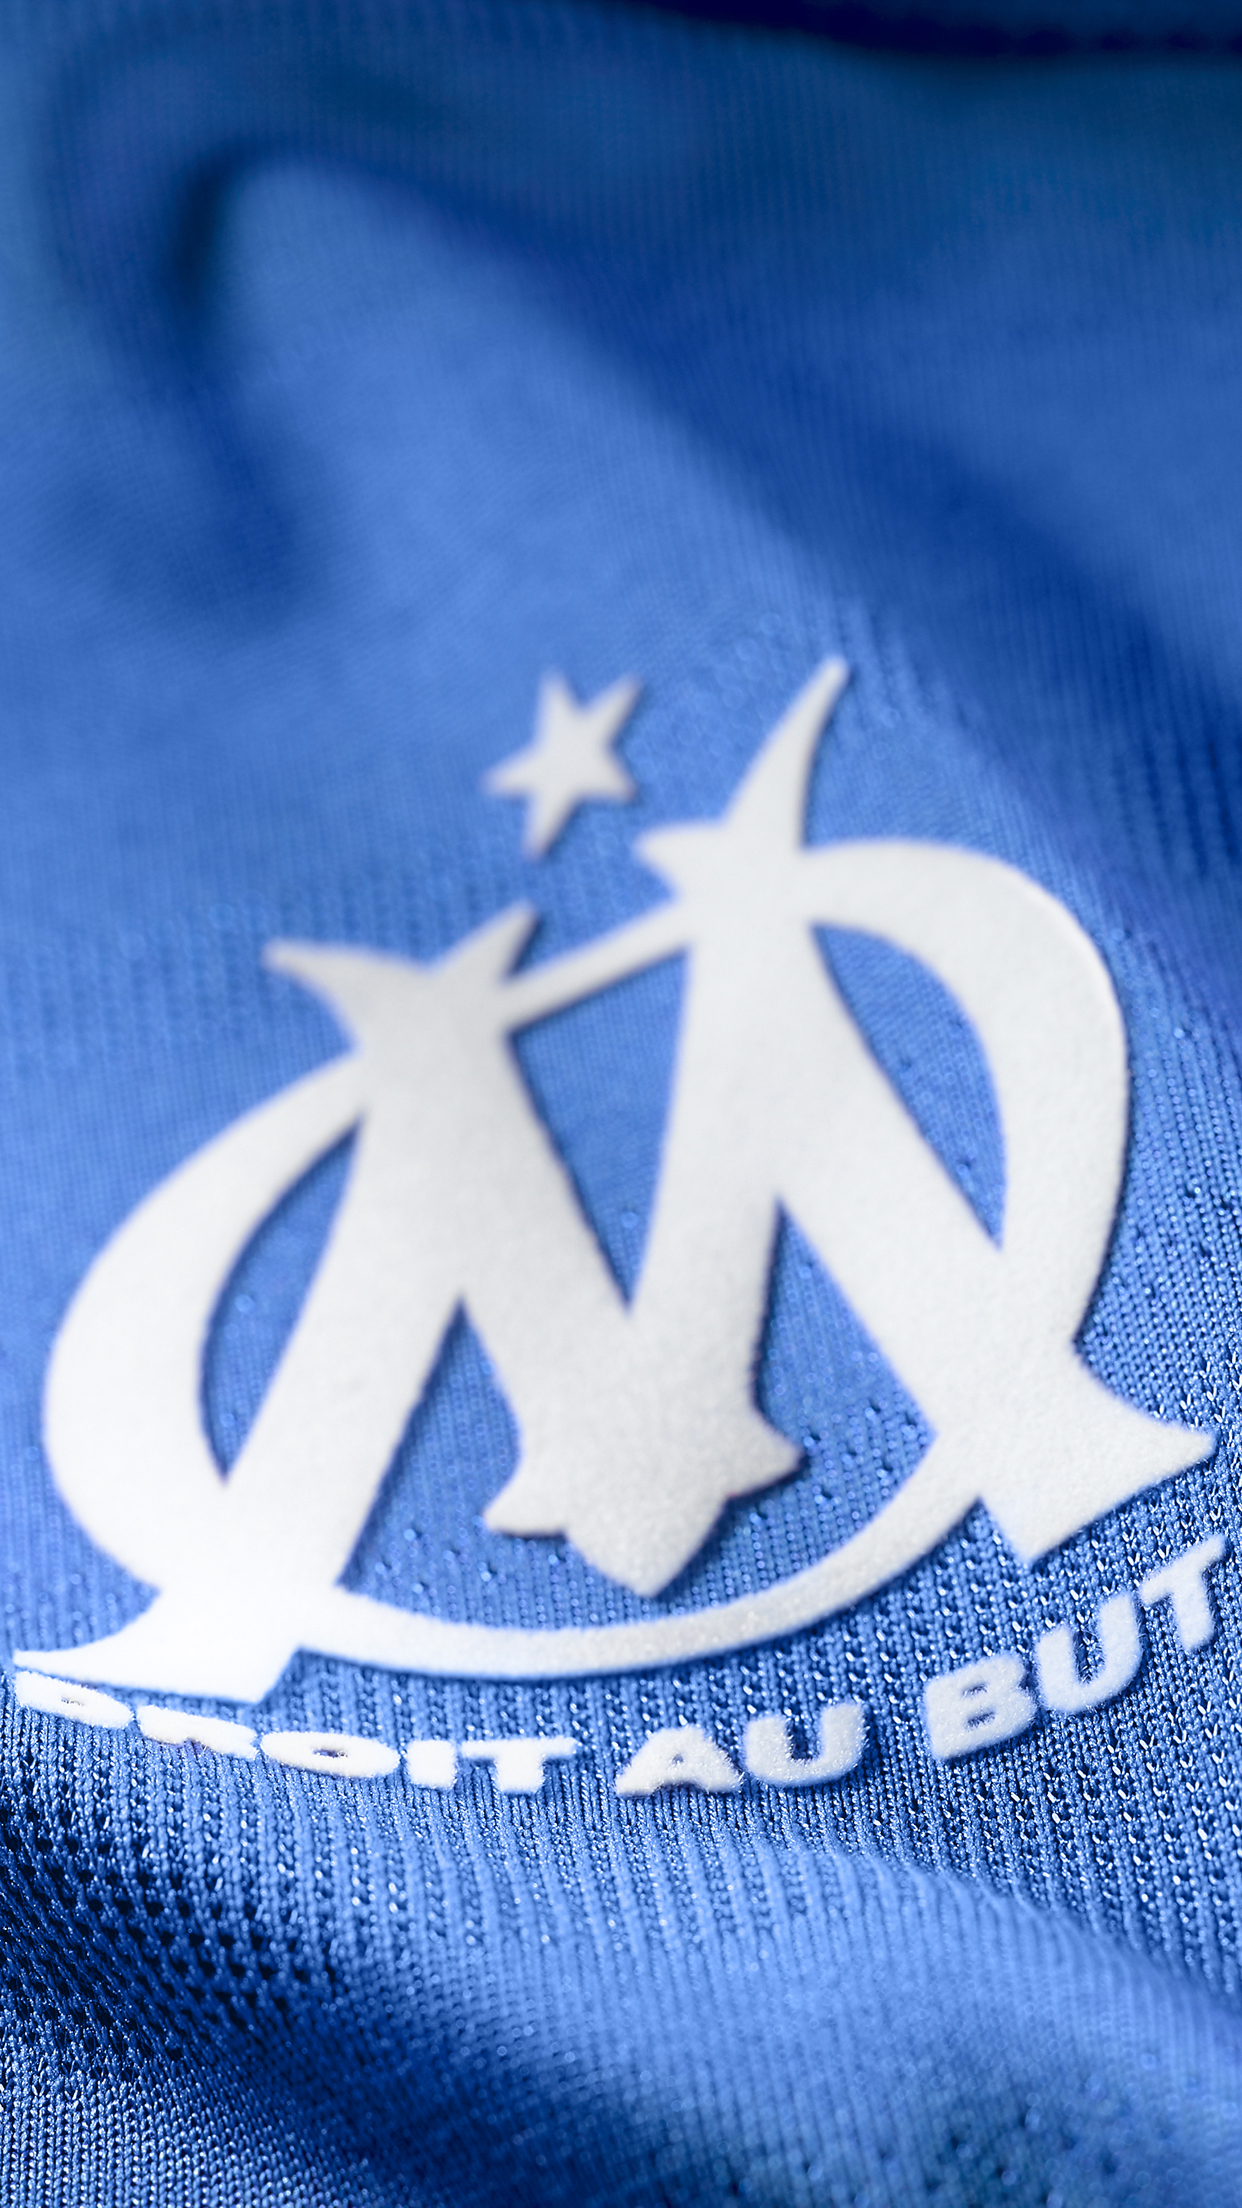 Om Maillot Wallpaper For Iphone X 8 7 6 Free Download